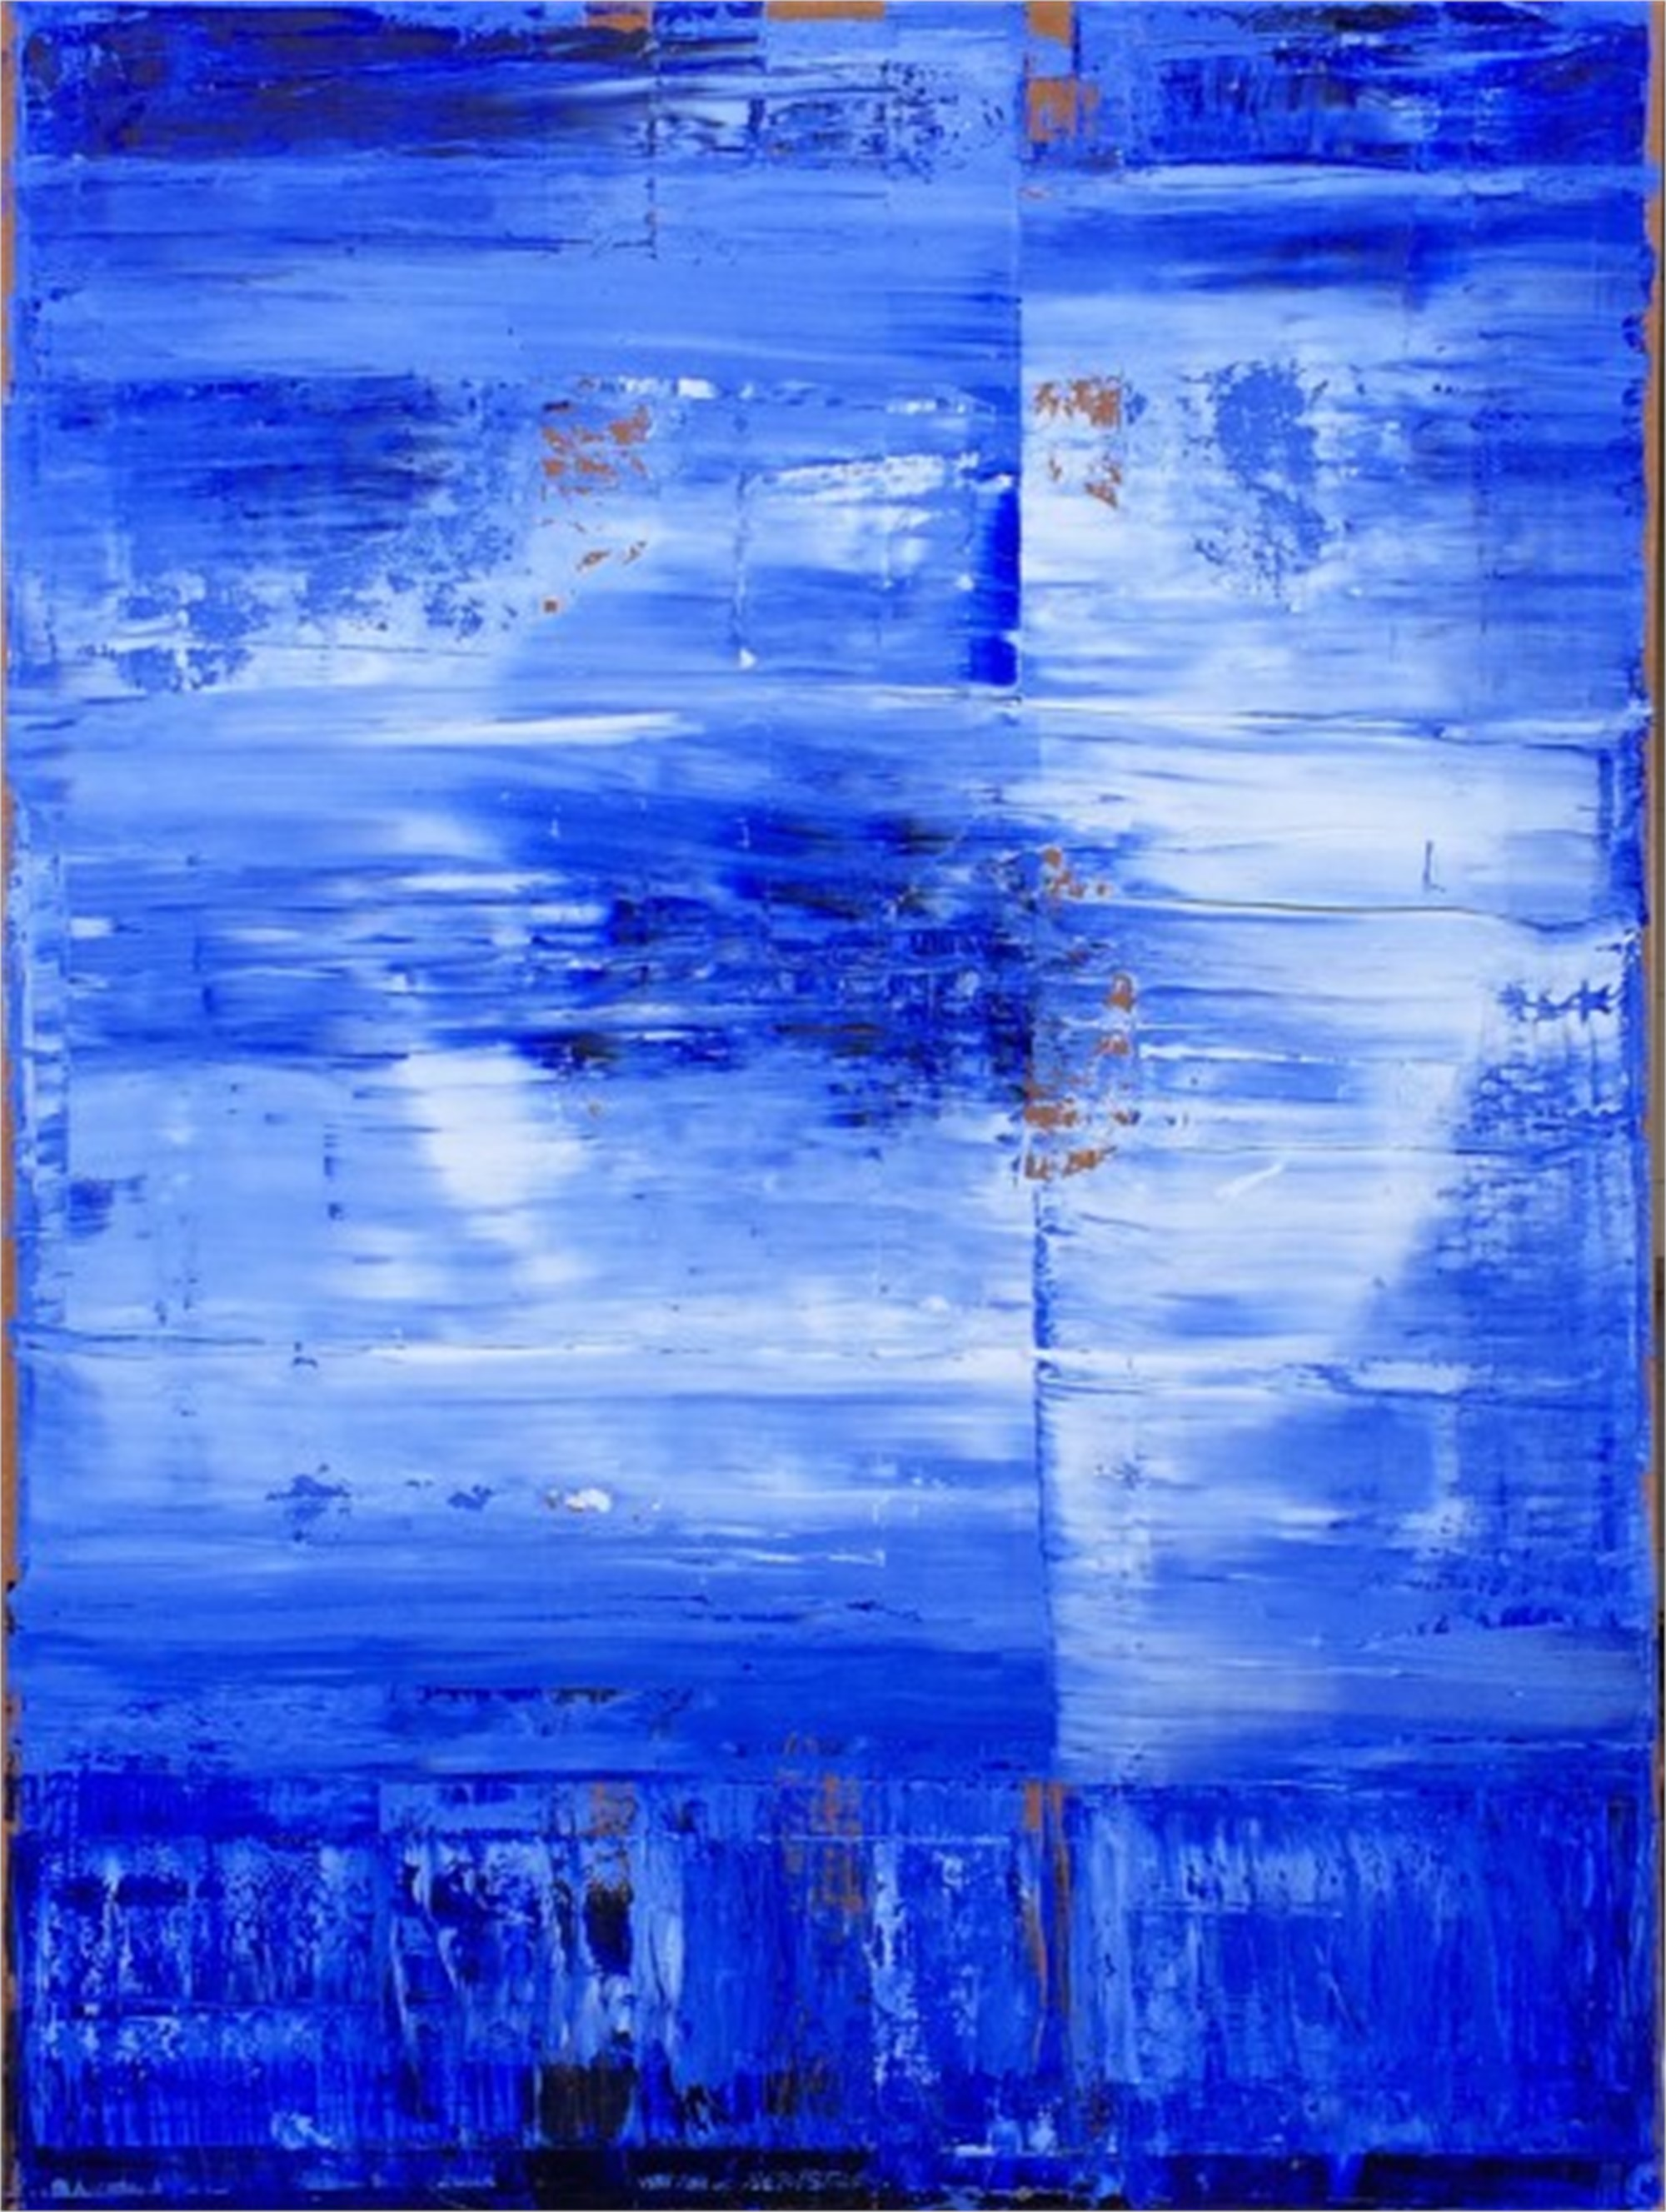 Blue-White No. 9 by William Song